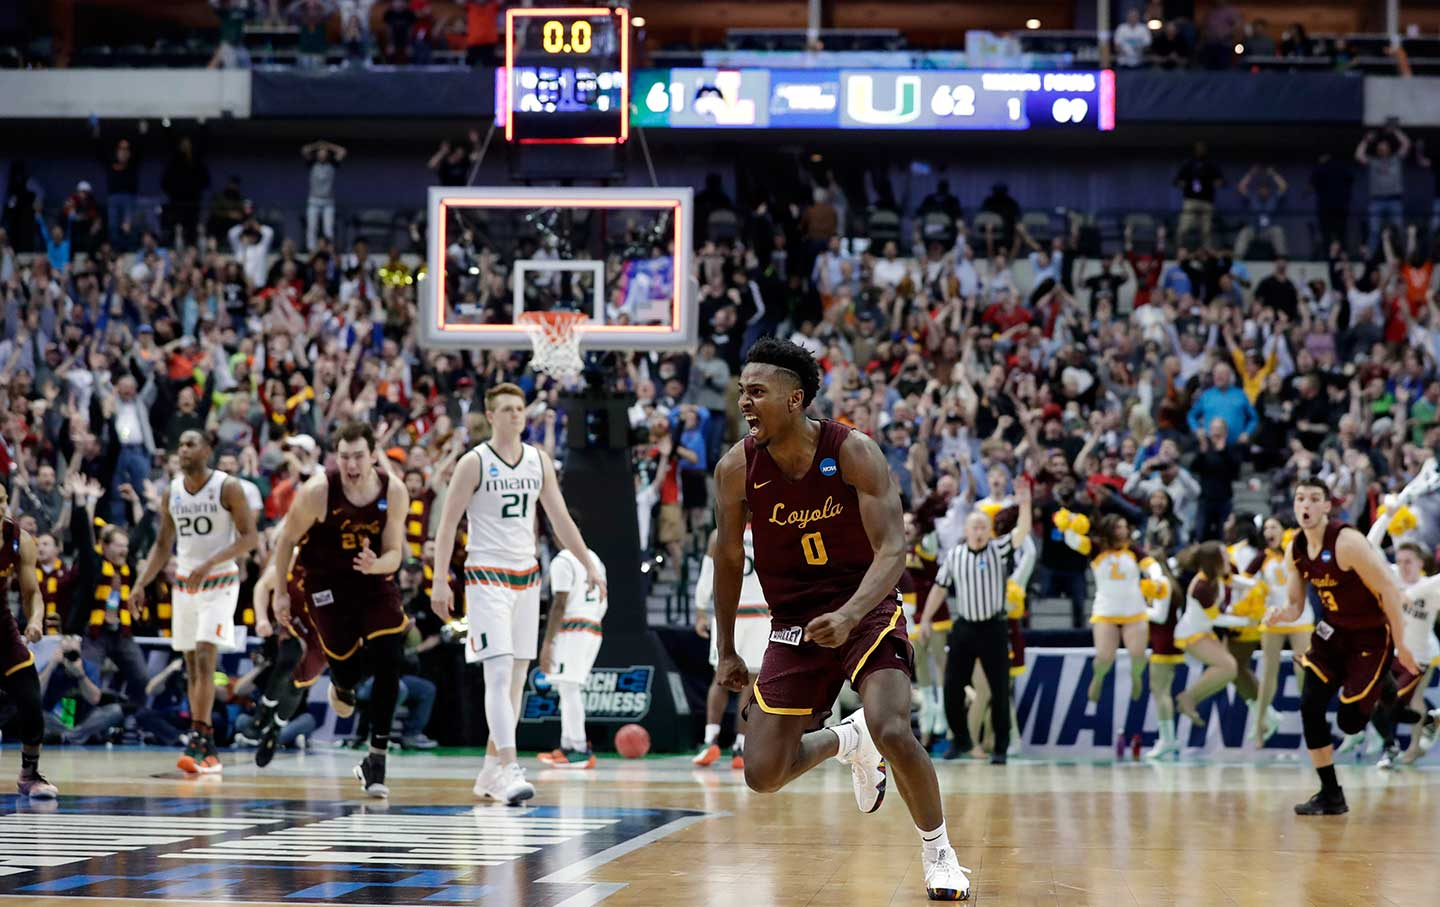 Loyola uses late basket to advance past Tennessee